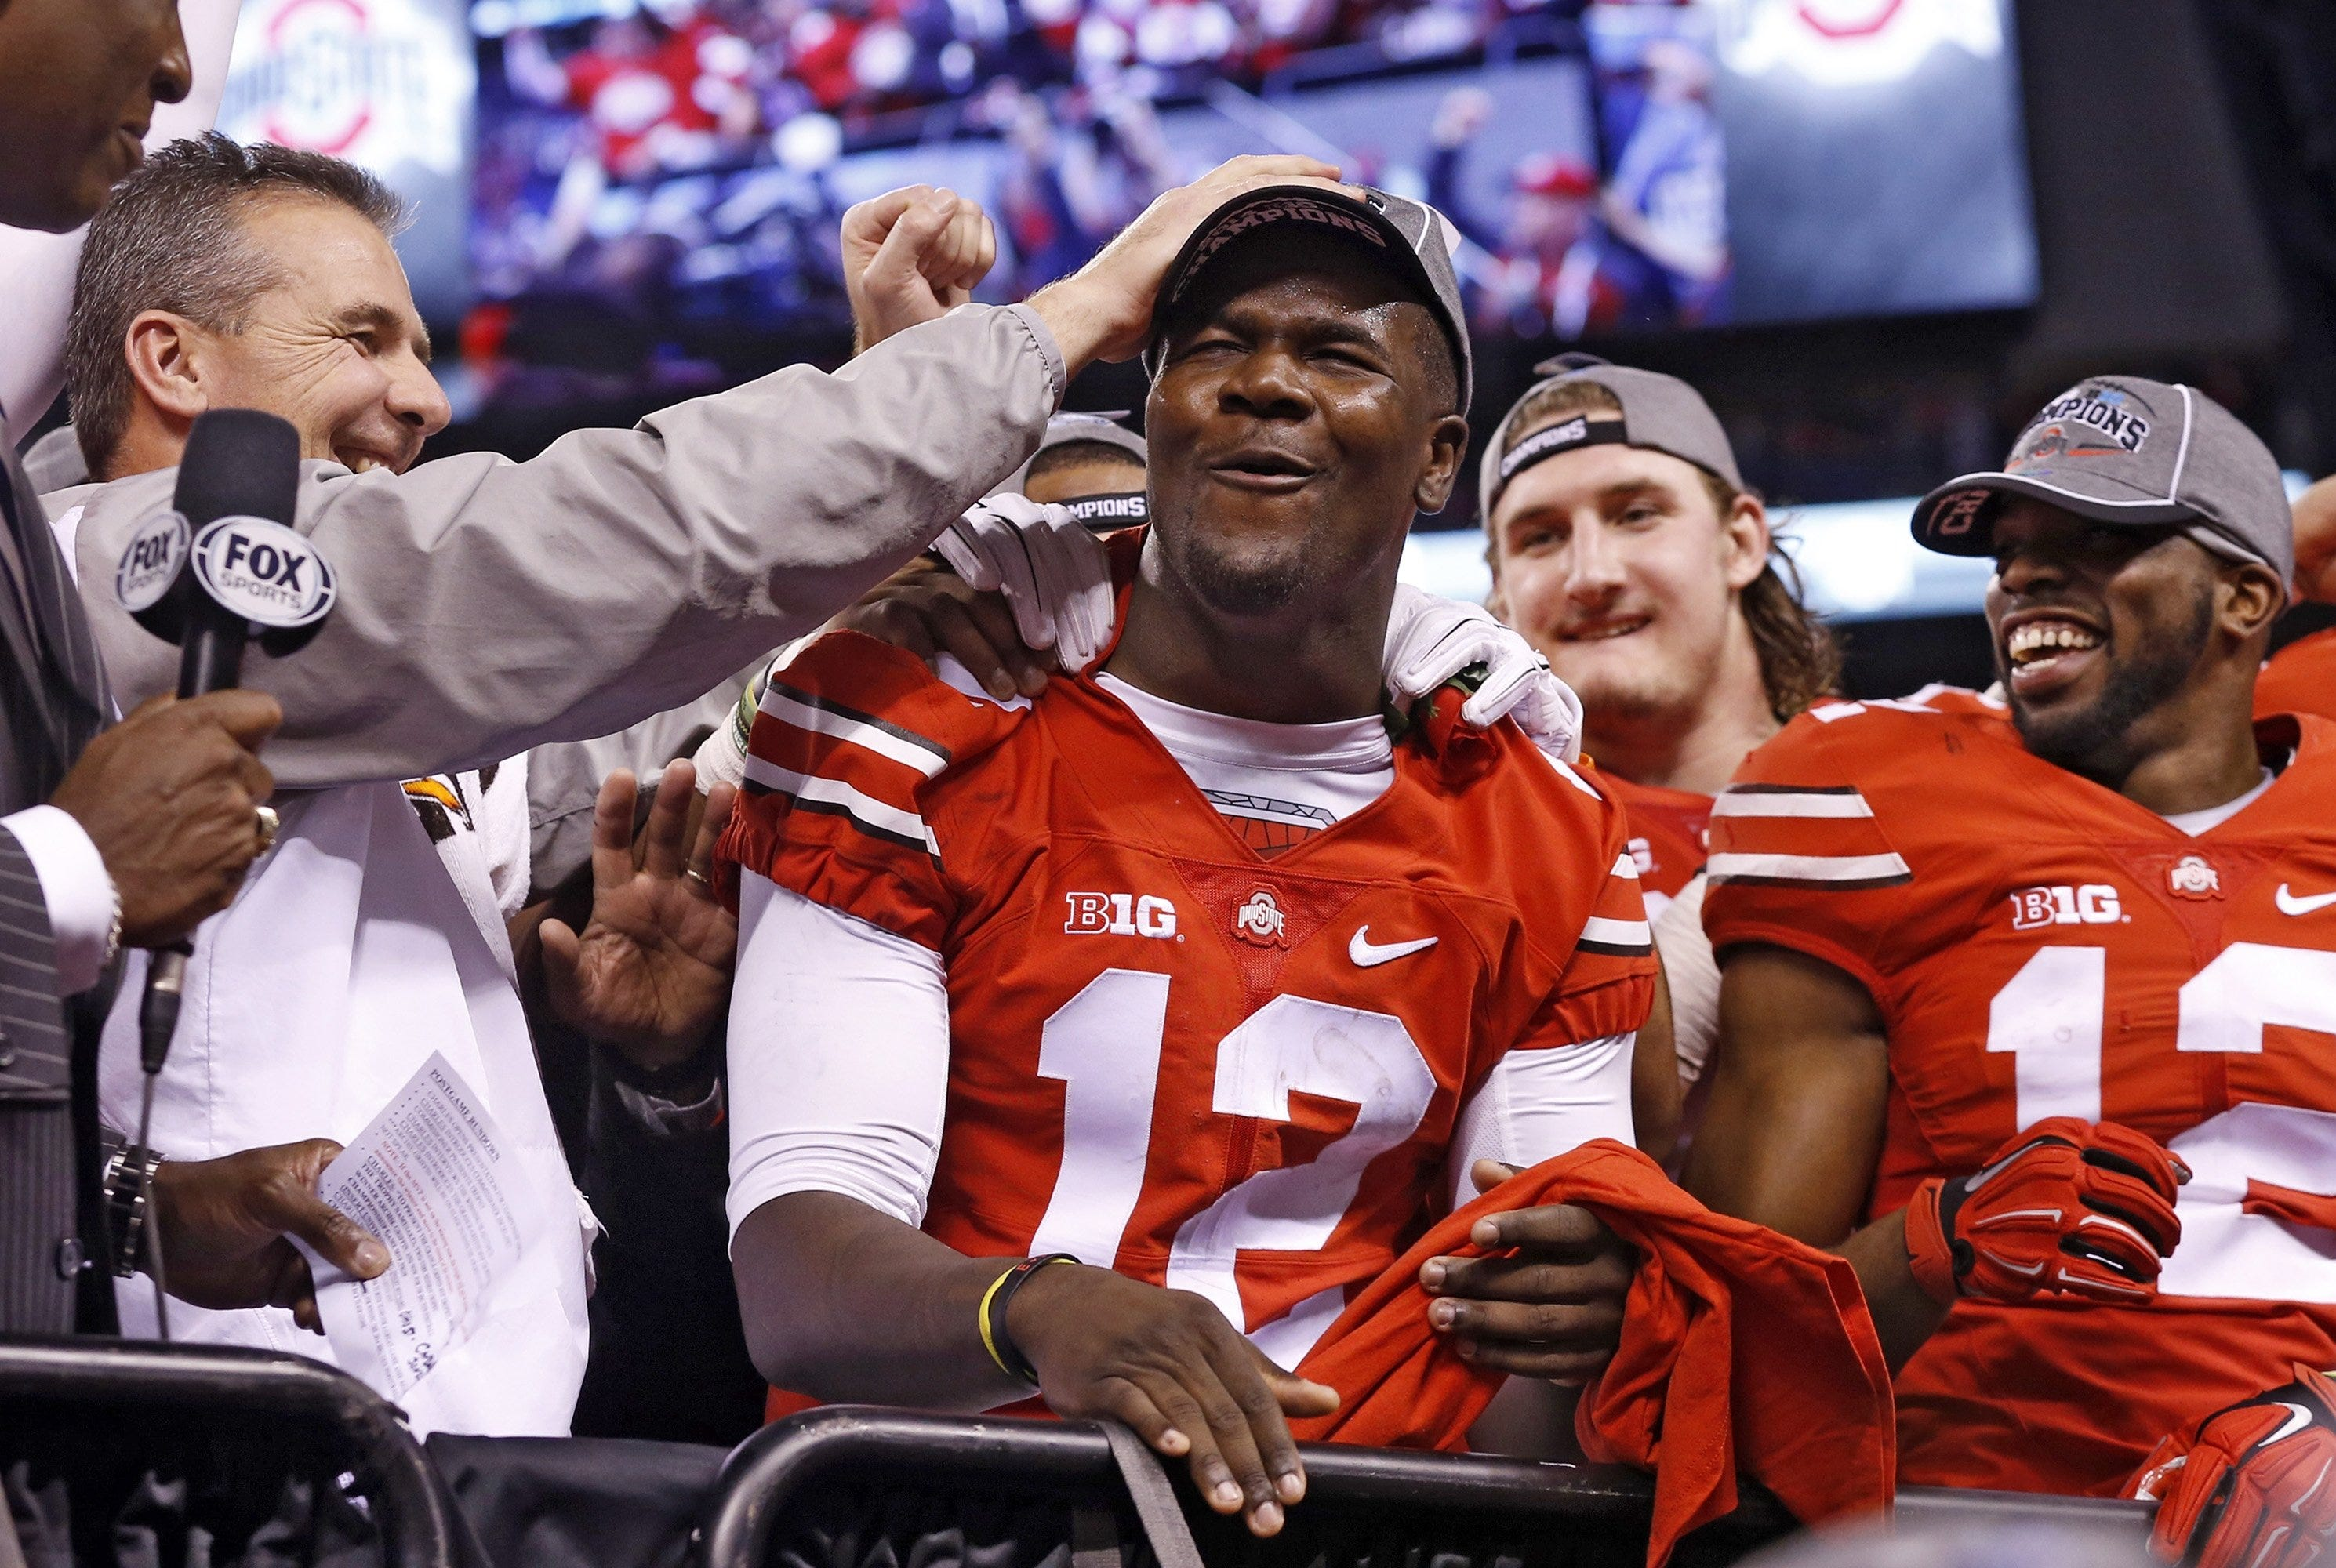 Ohio State coach Urban Meyer had his doubts about third-string quarterback Cardale Jones (12), but the third-year sophomore proved himself.